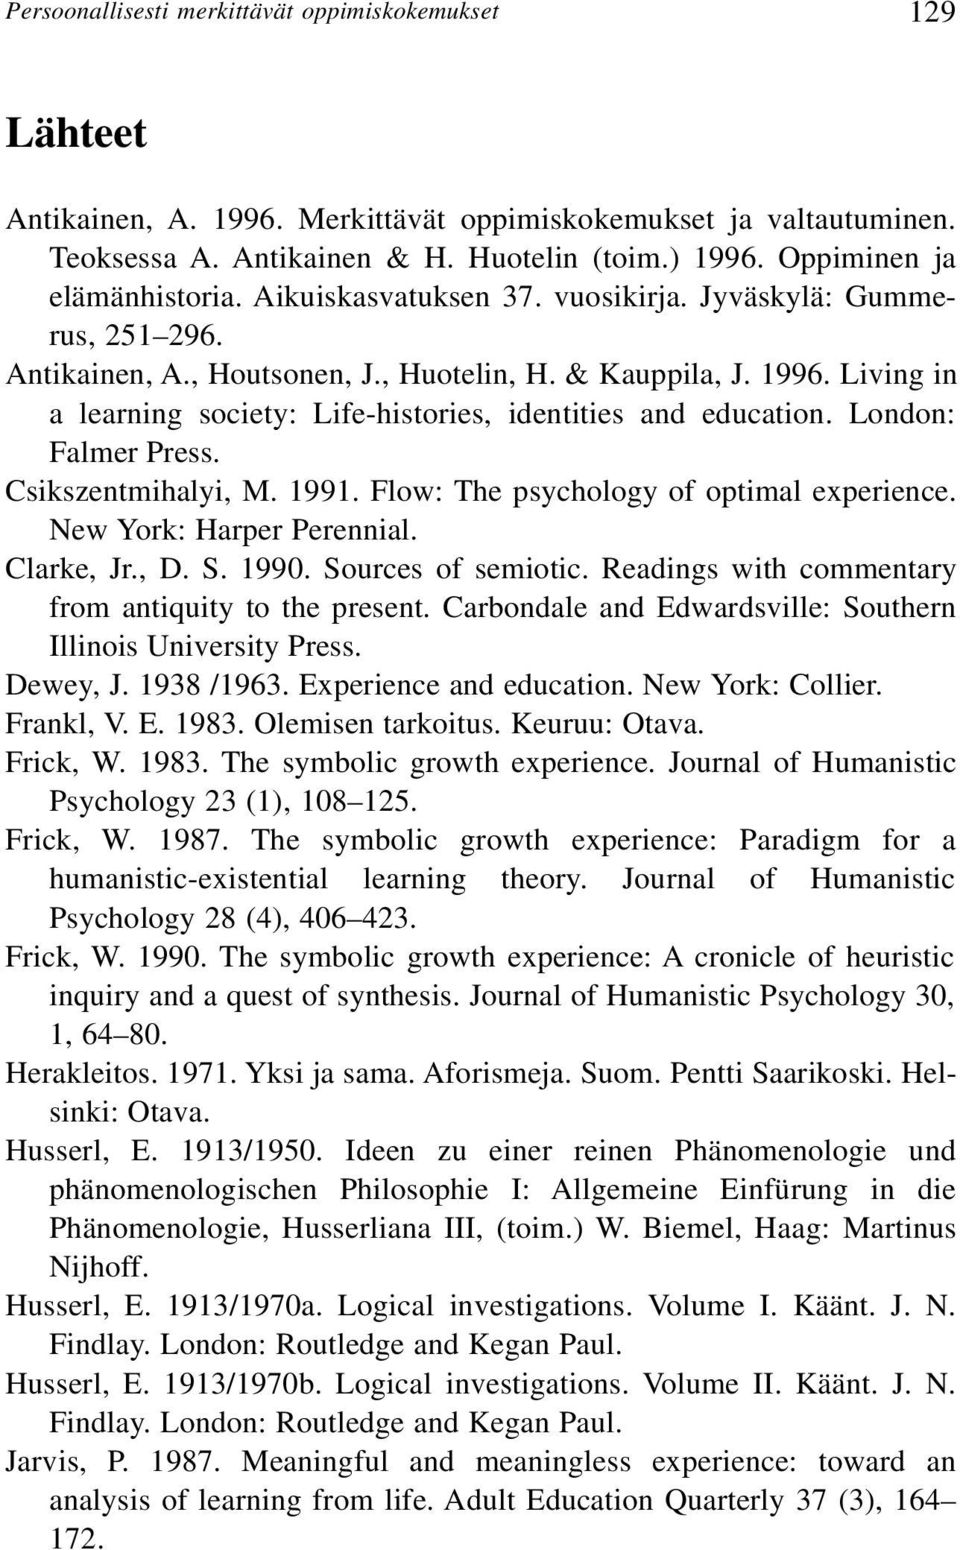 Living in a learning society: Life-histories, identities and education. London: Falmer Press. Csikszentmihalyi, M. 1991. Flow: The psychology of optimal experience. New York: Harper Perennial.